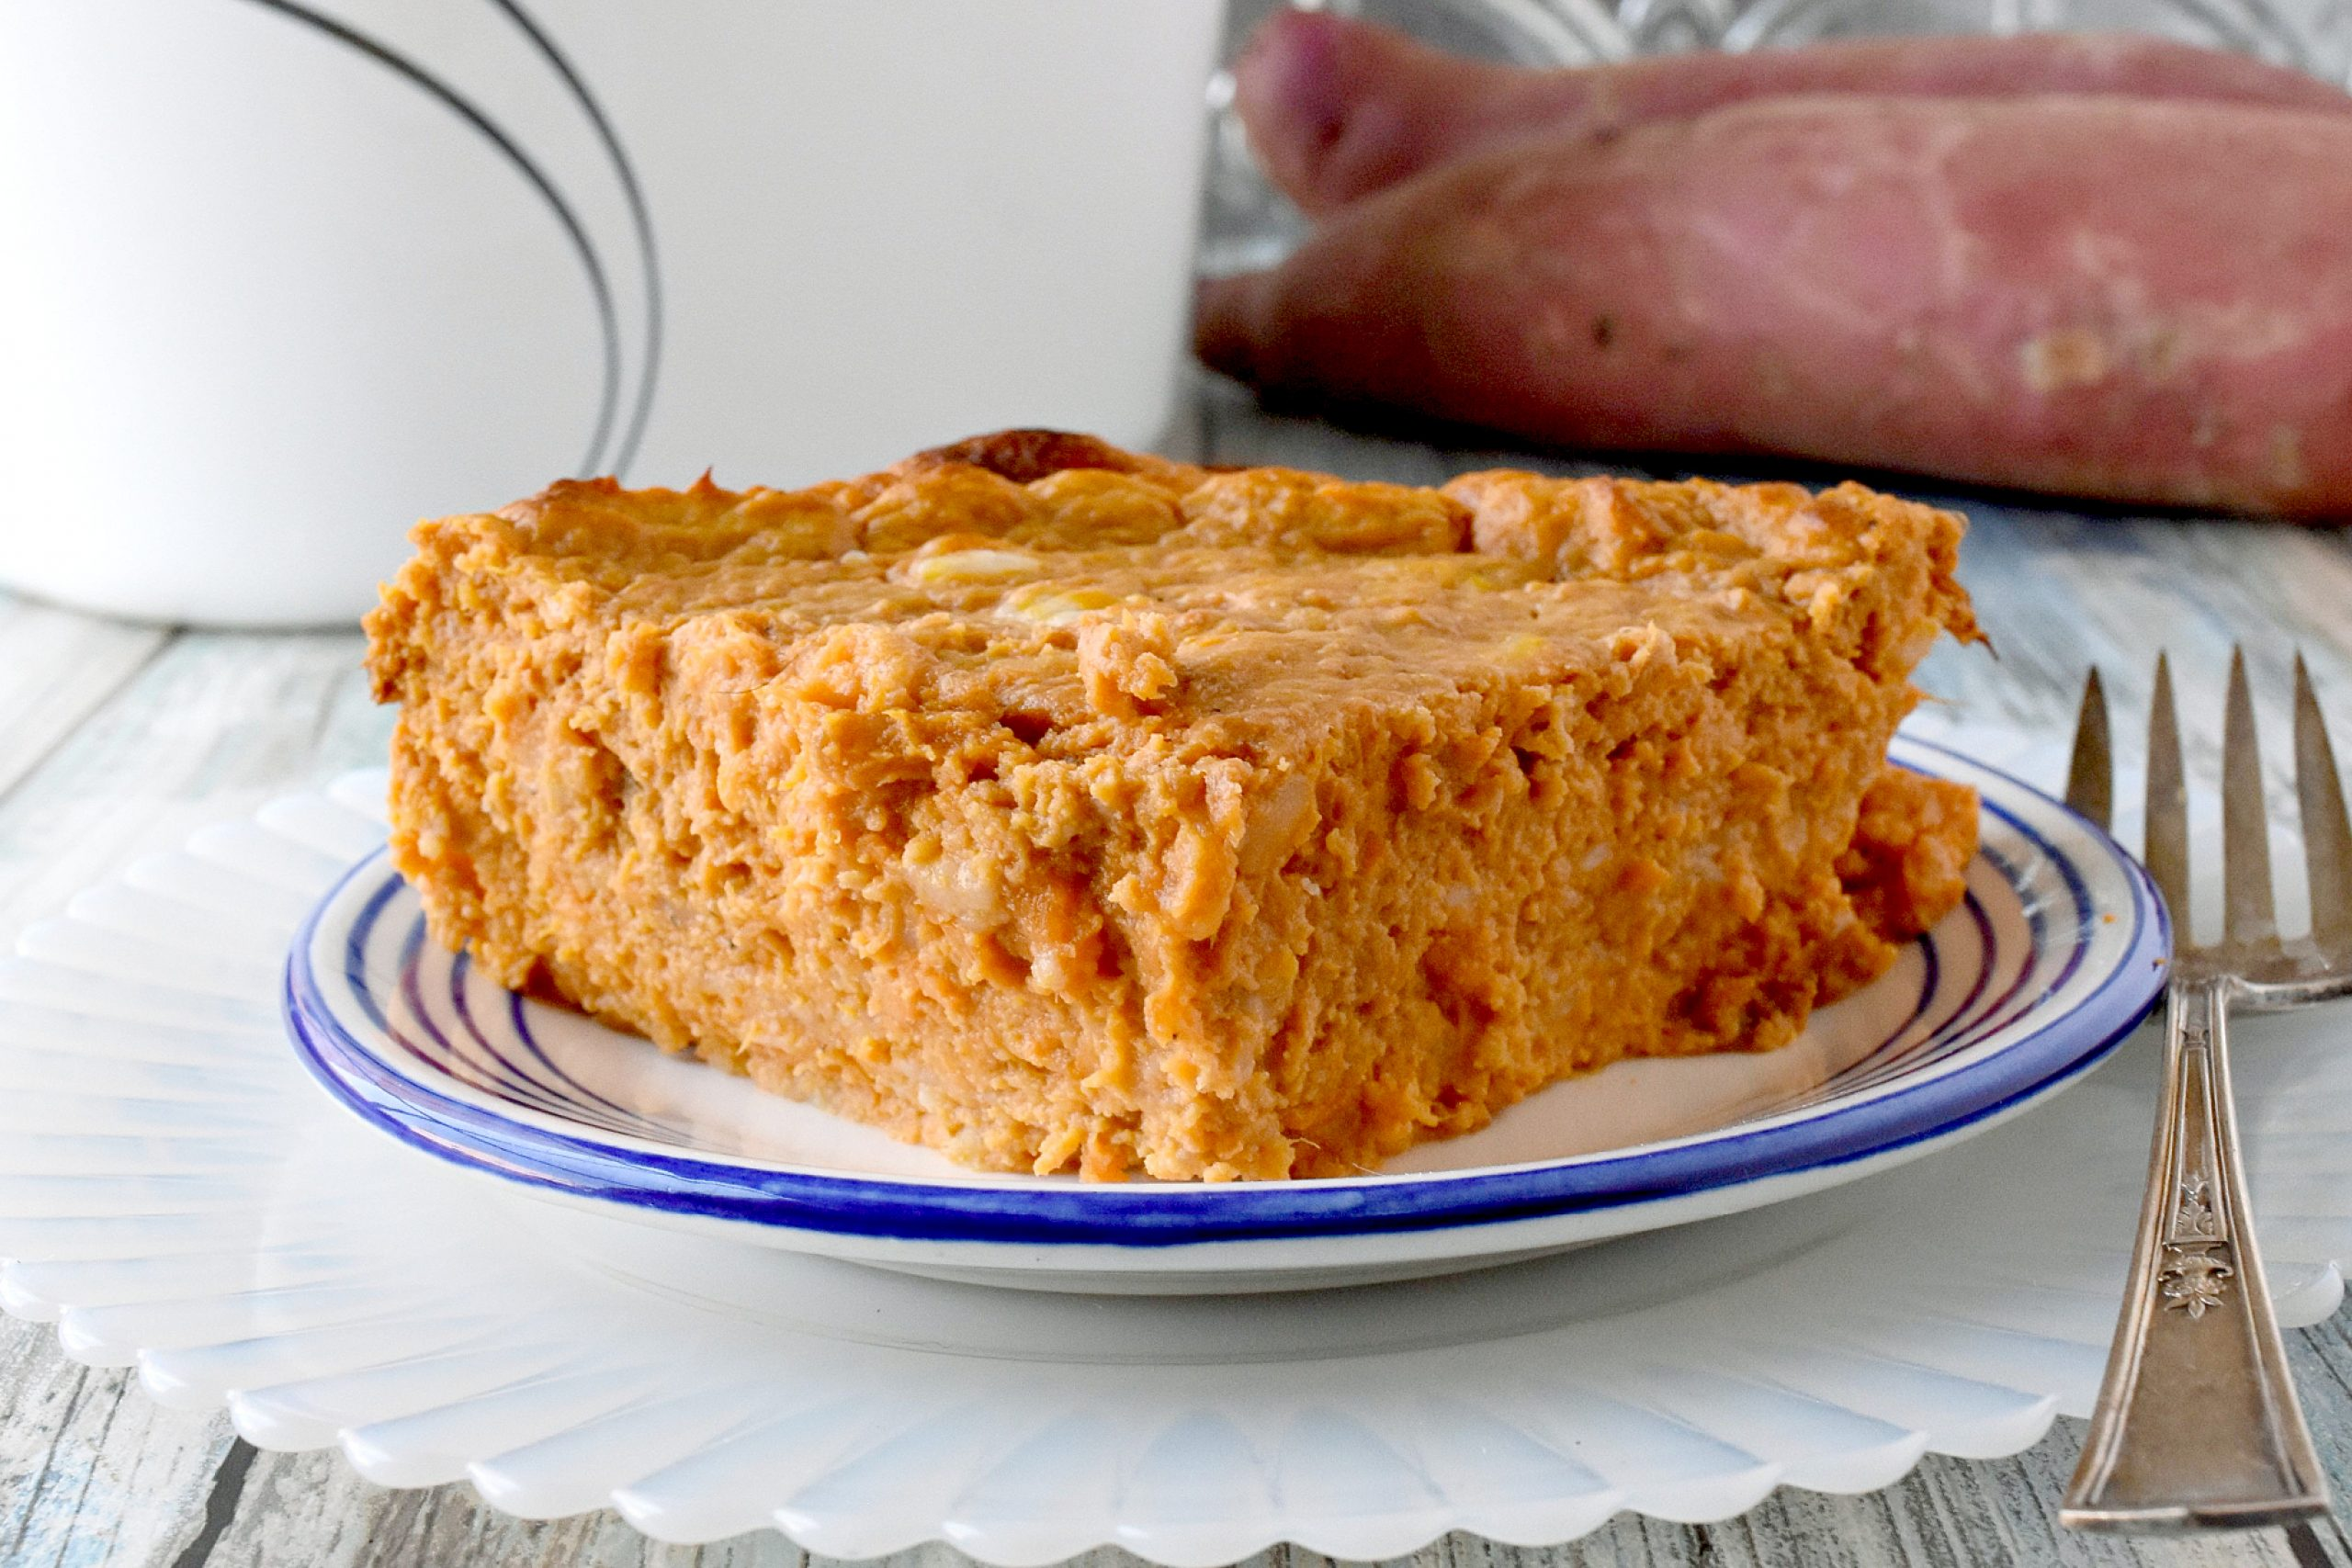 Easy Yam Souffle is not your typical yam souffle. It's savory with delicious Gruyere cheese, eggs, and sage. #FallFlavors